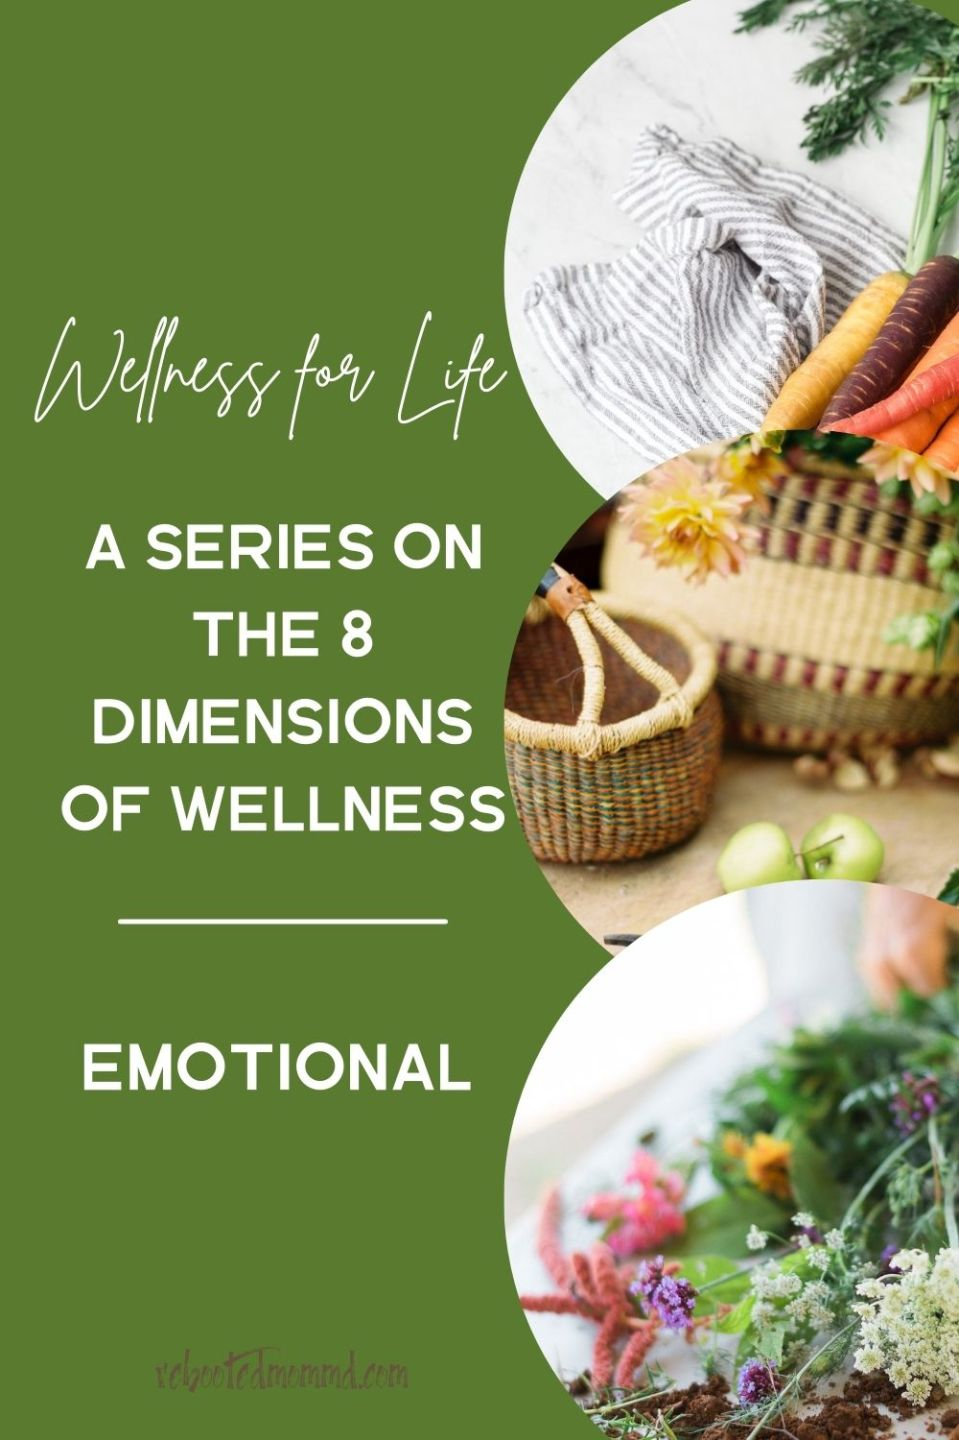 Emotional Wellness: Don't Underestimate Its Power